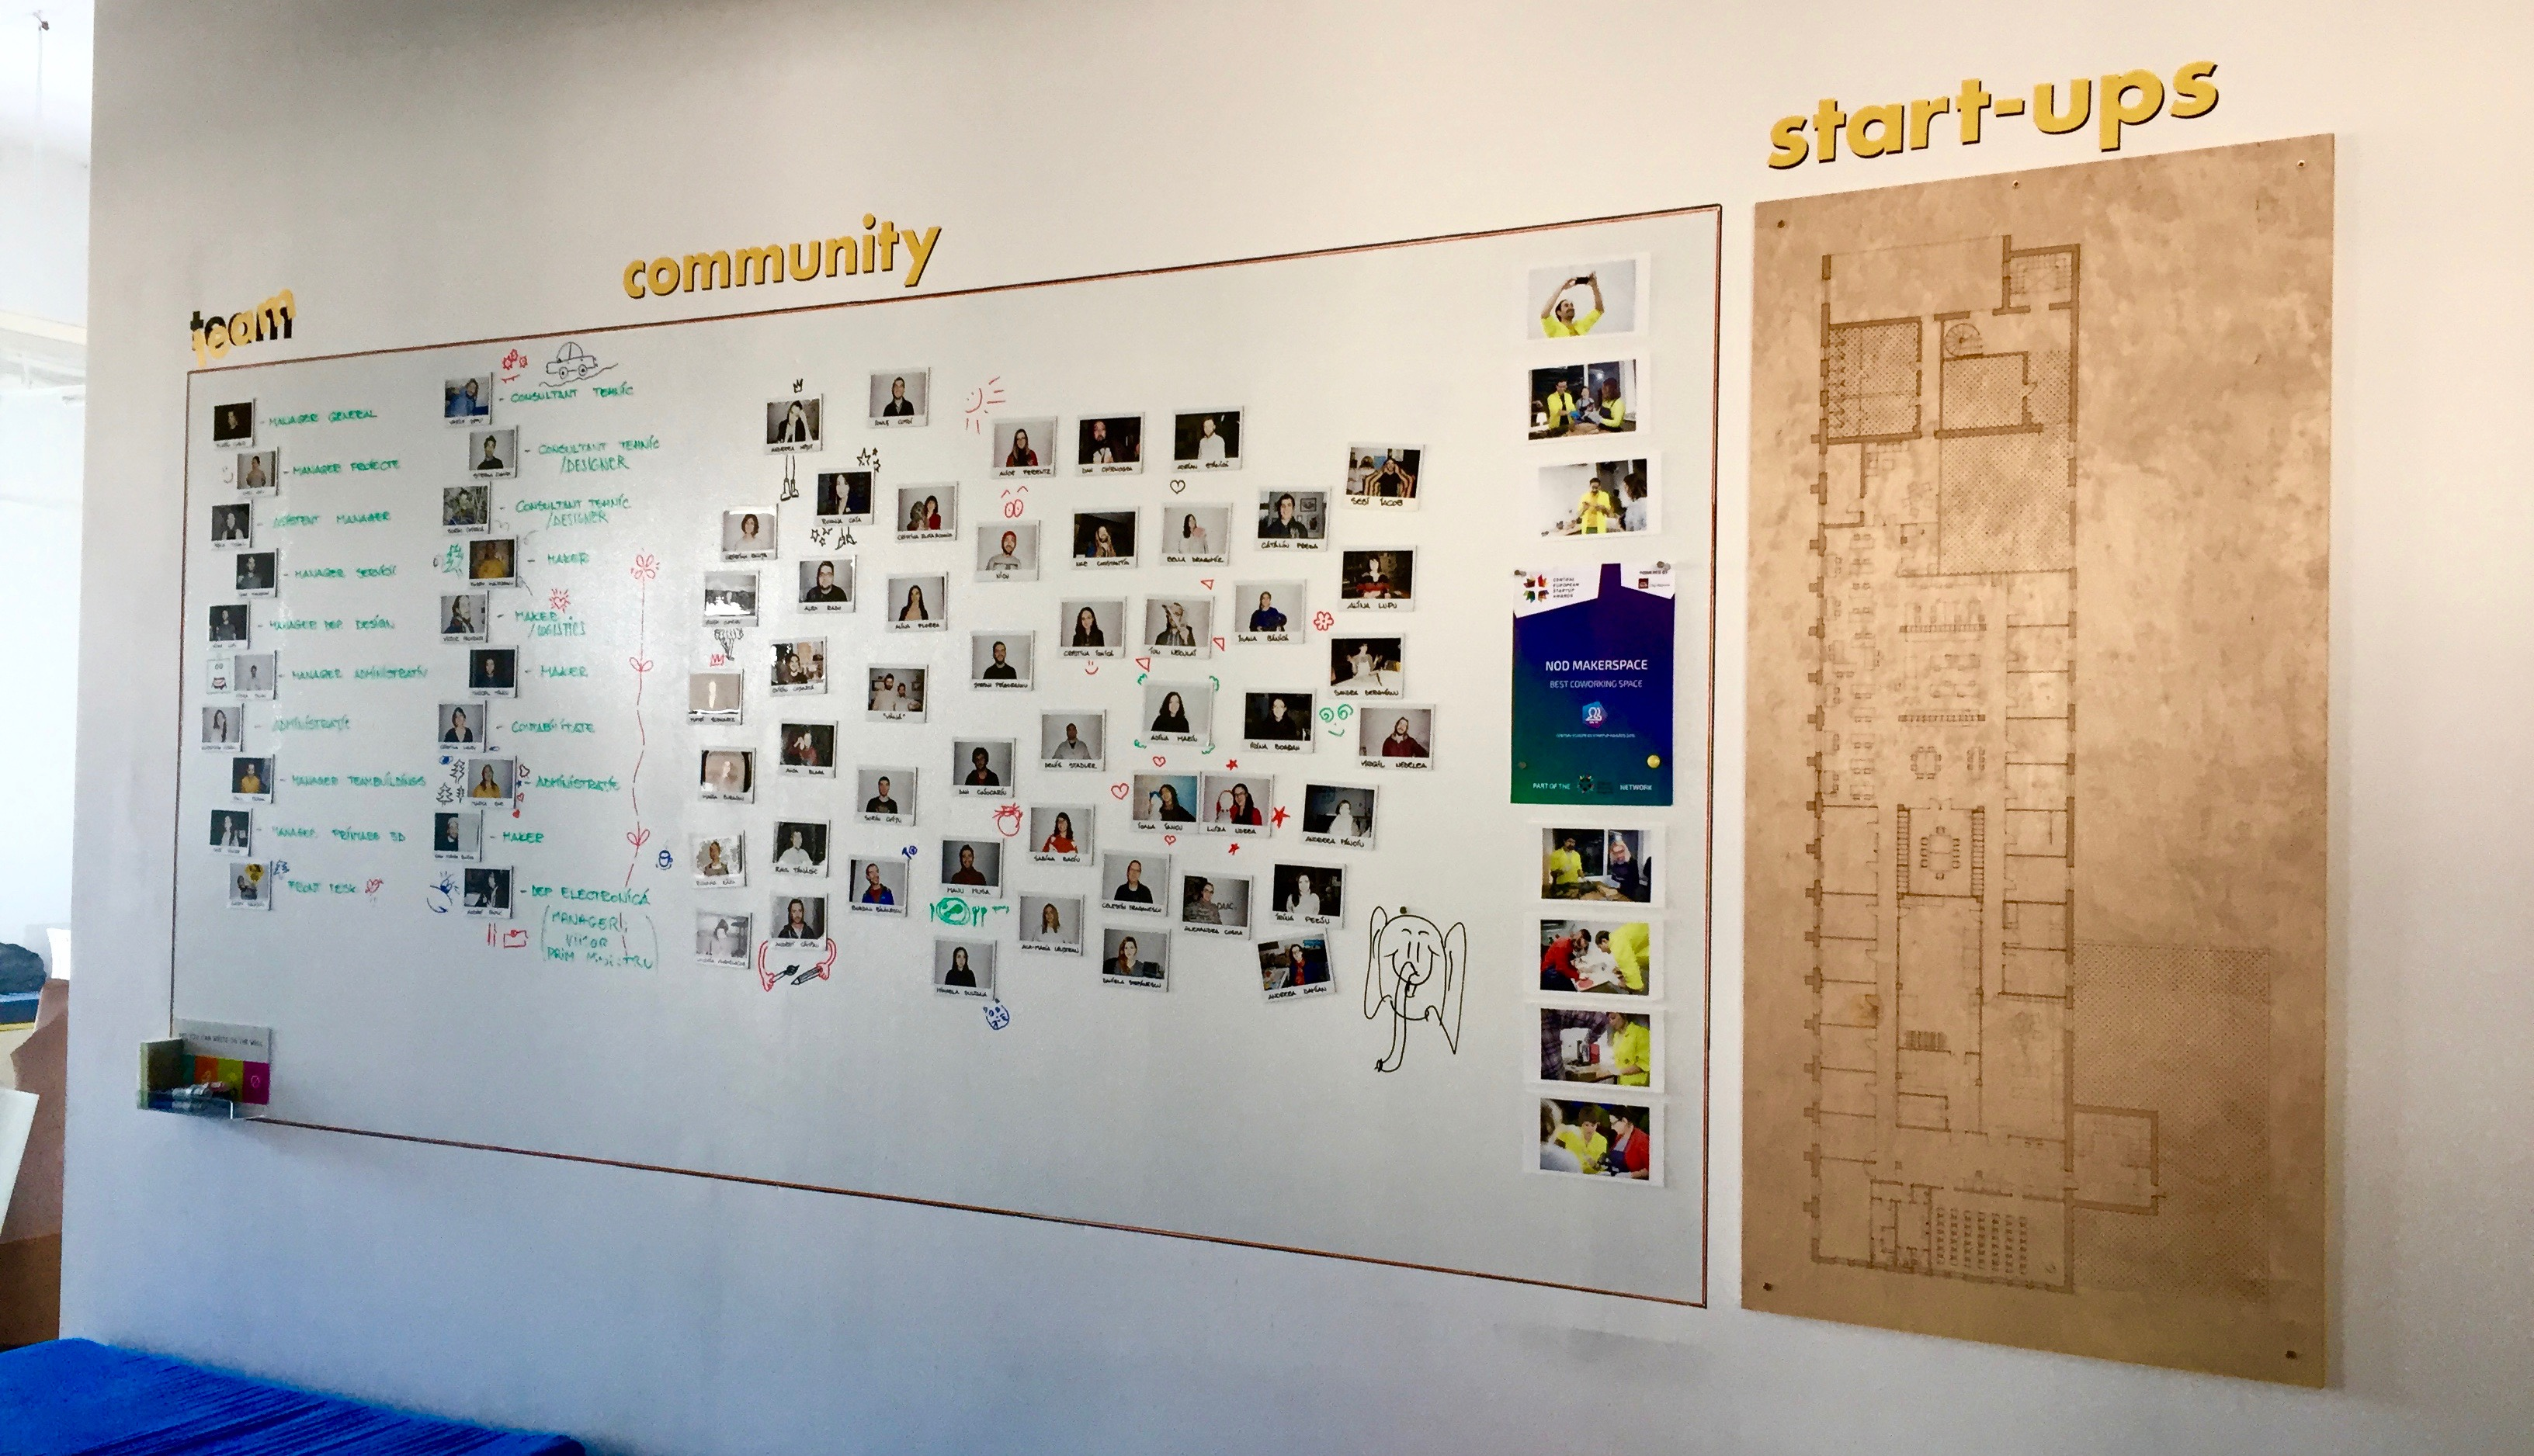 Community wall at Nod Makerspace